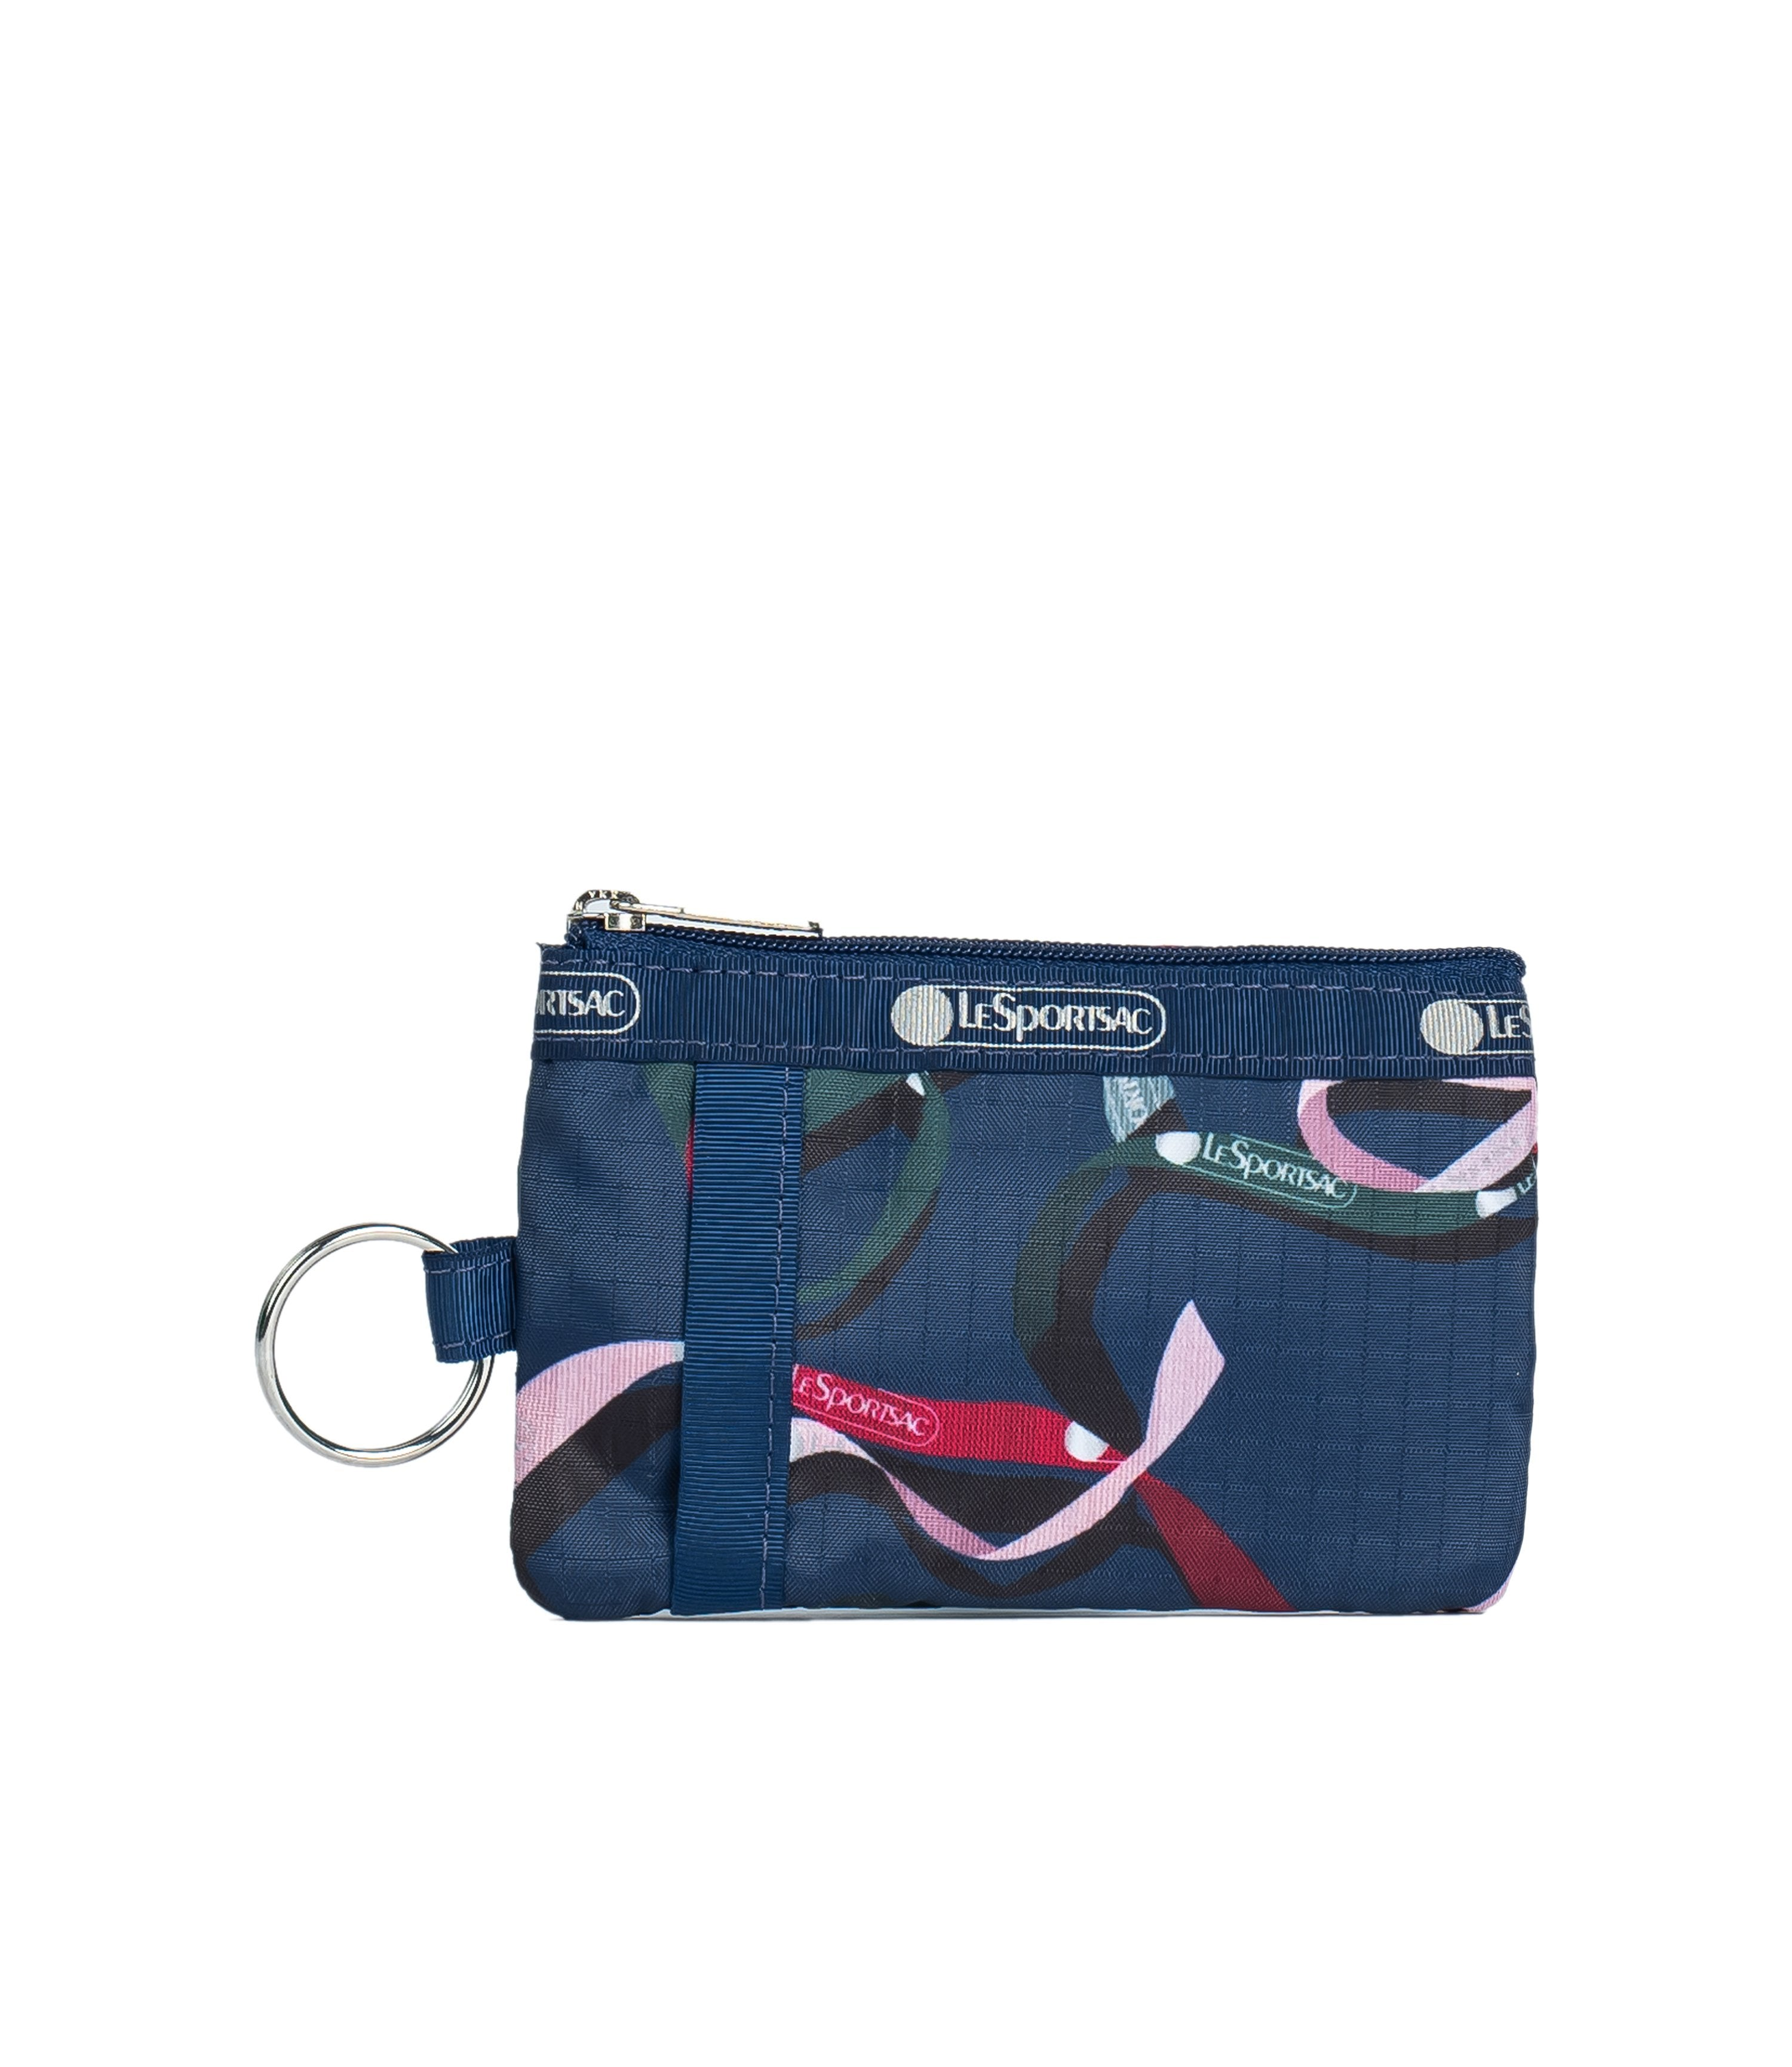 LeSportsac - Accessories - ID Card Case - Ribbons Navy print